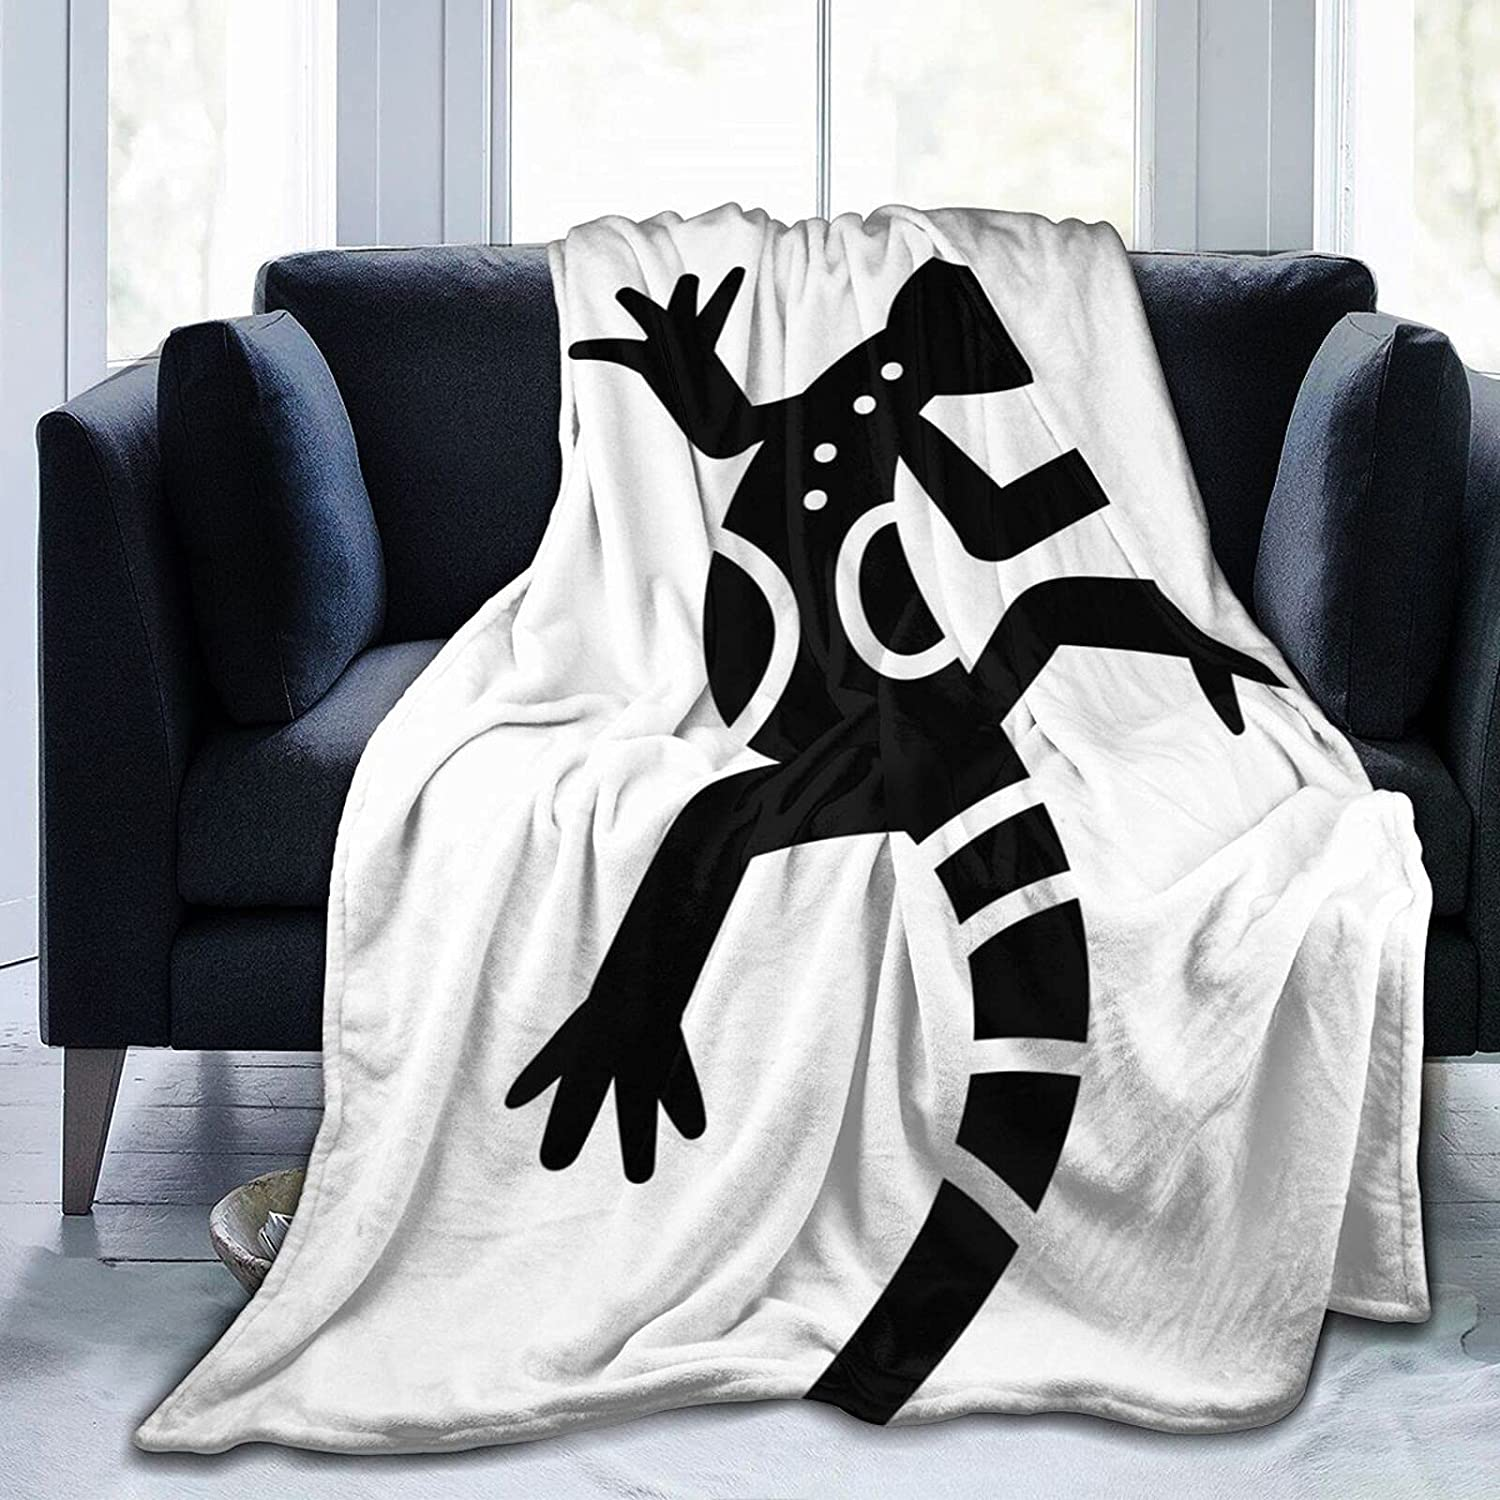 Tribal Lizard 5 Virginia Beach Mall Soft and Blanket Suitable Comfortable f Flannel Colorado Springs Mall